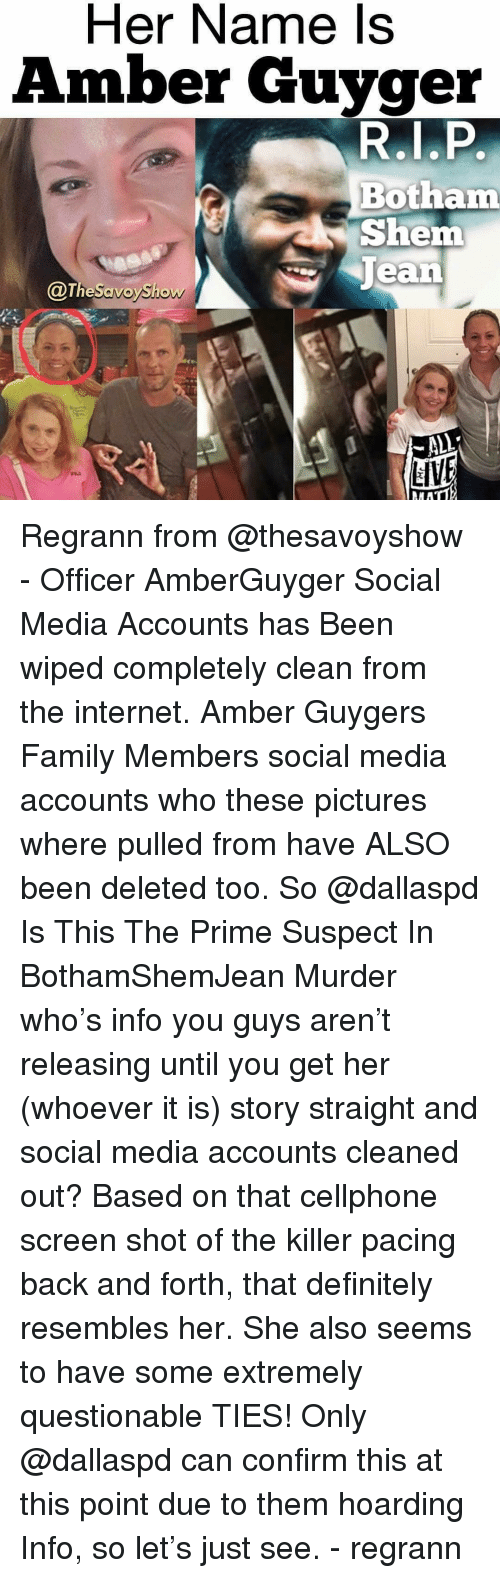 Definitely, Family, and Internet: Her Name ls  Amber Guyger  R.LP  Botham  Shem  ean  @TheSavoySho  LIVE Regrann from @thesavoyshow - Officer AmberGuyger Social Media Accounts has Been wiped completely clean from the internet. Amber Guygers Family Members social media accounts who these pictures where pulled from have ALSO been deleted too. So @dallaspd Is This The Prime Suspect In BothamShemJean Murder who's info you guys aren't releasing until you get her (whoever it is) story straight and social media accounts cleaned out? Based on that cellphone screen shot of the killer pacing back and forth, that definitely resembles her. She also seems to have some extremely questionable TIES! Only @dallaspd can confirm this at this point due to them hoarding Info, so let's just see. - regrann